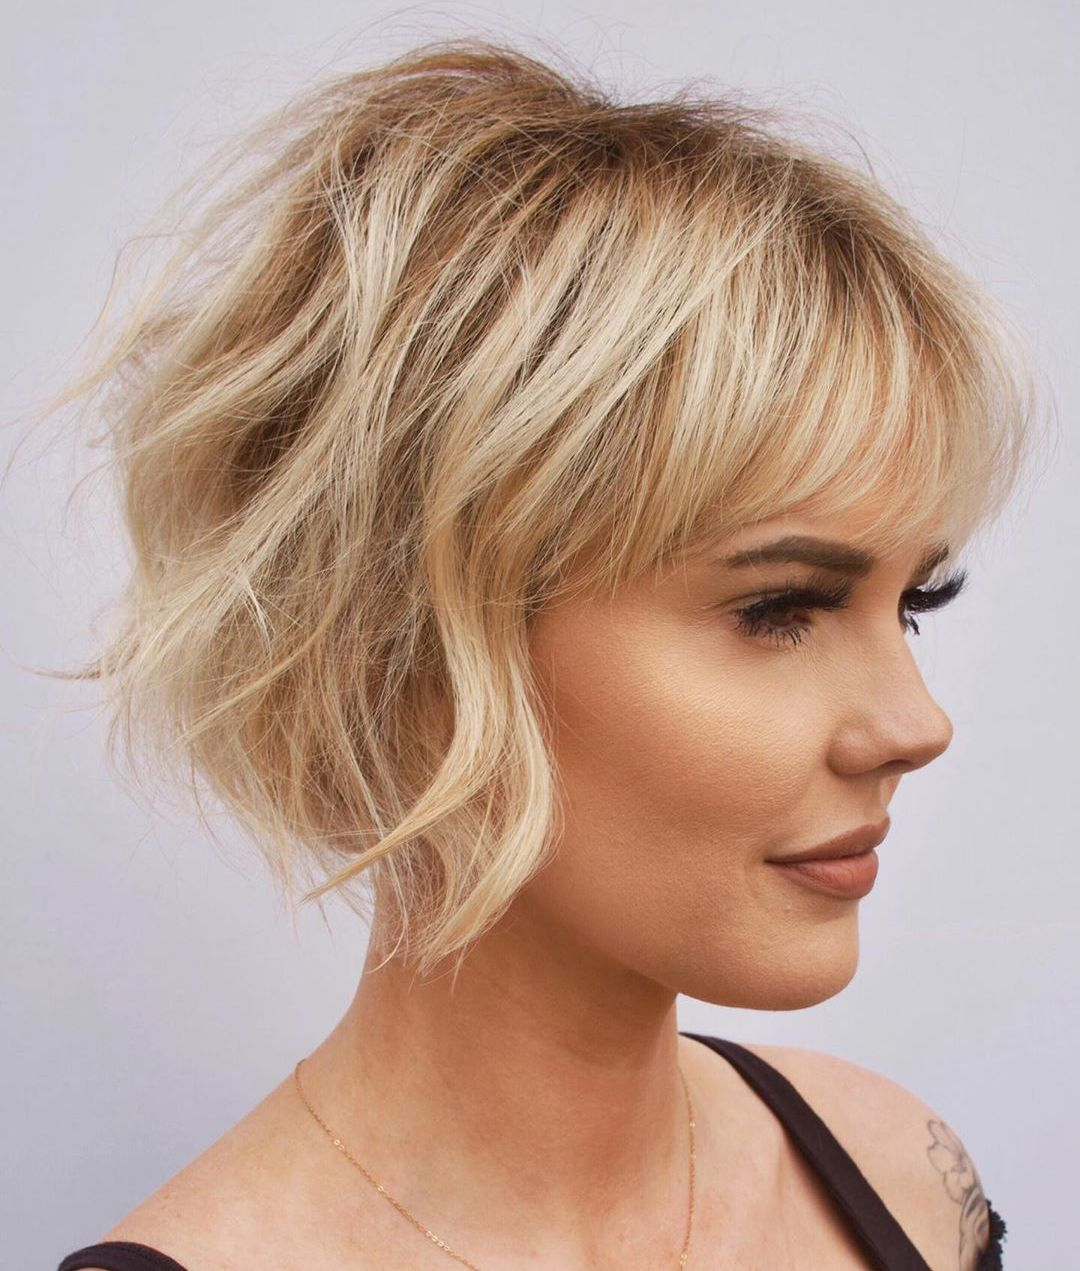 Short Women's Haircut with Bangs